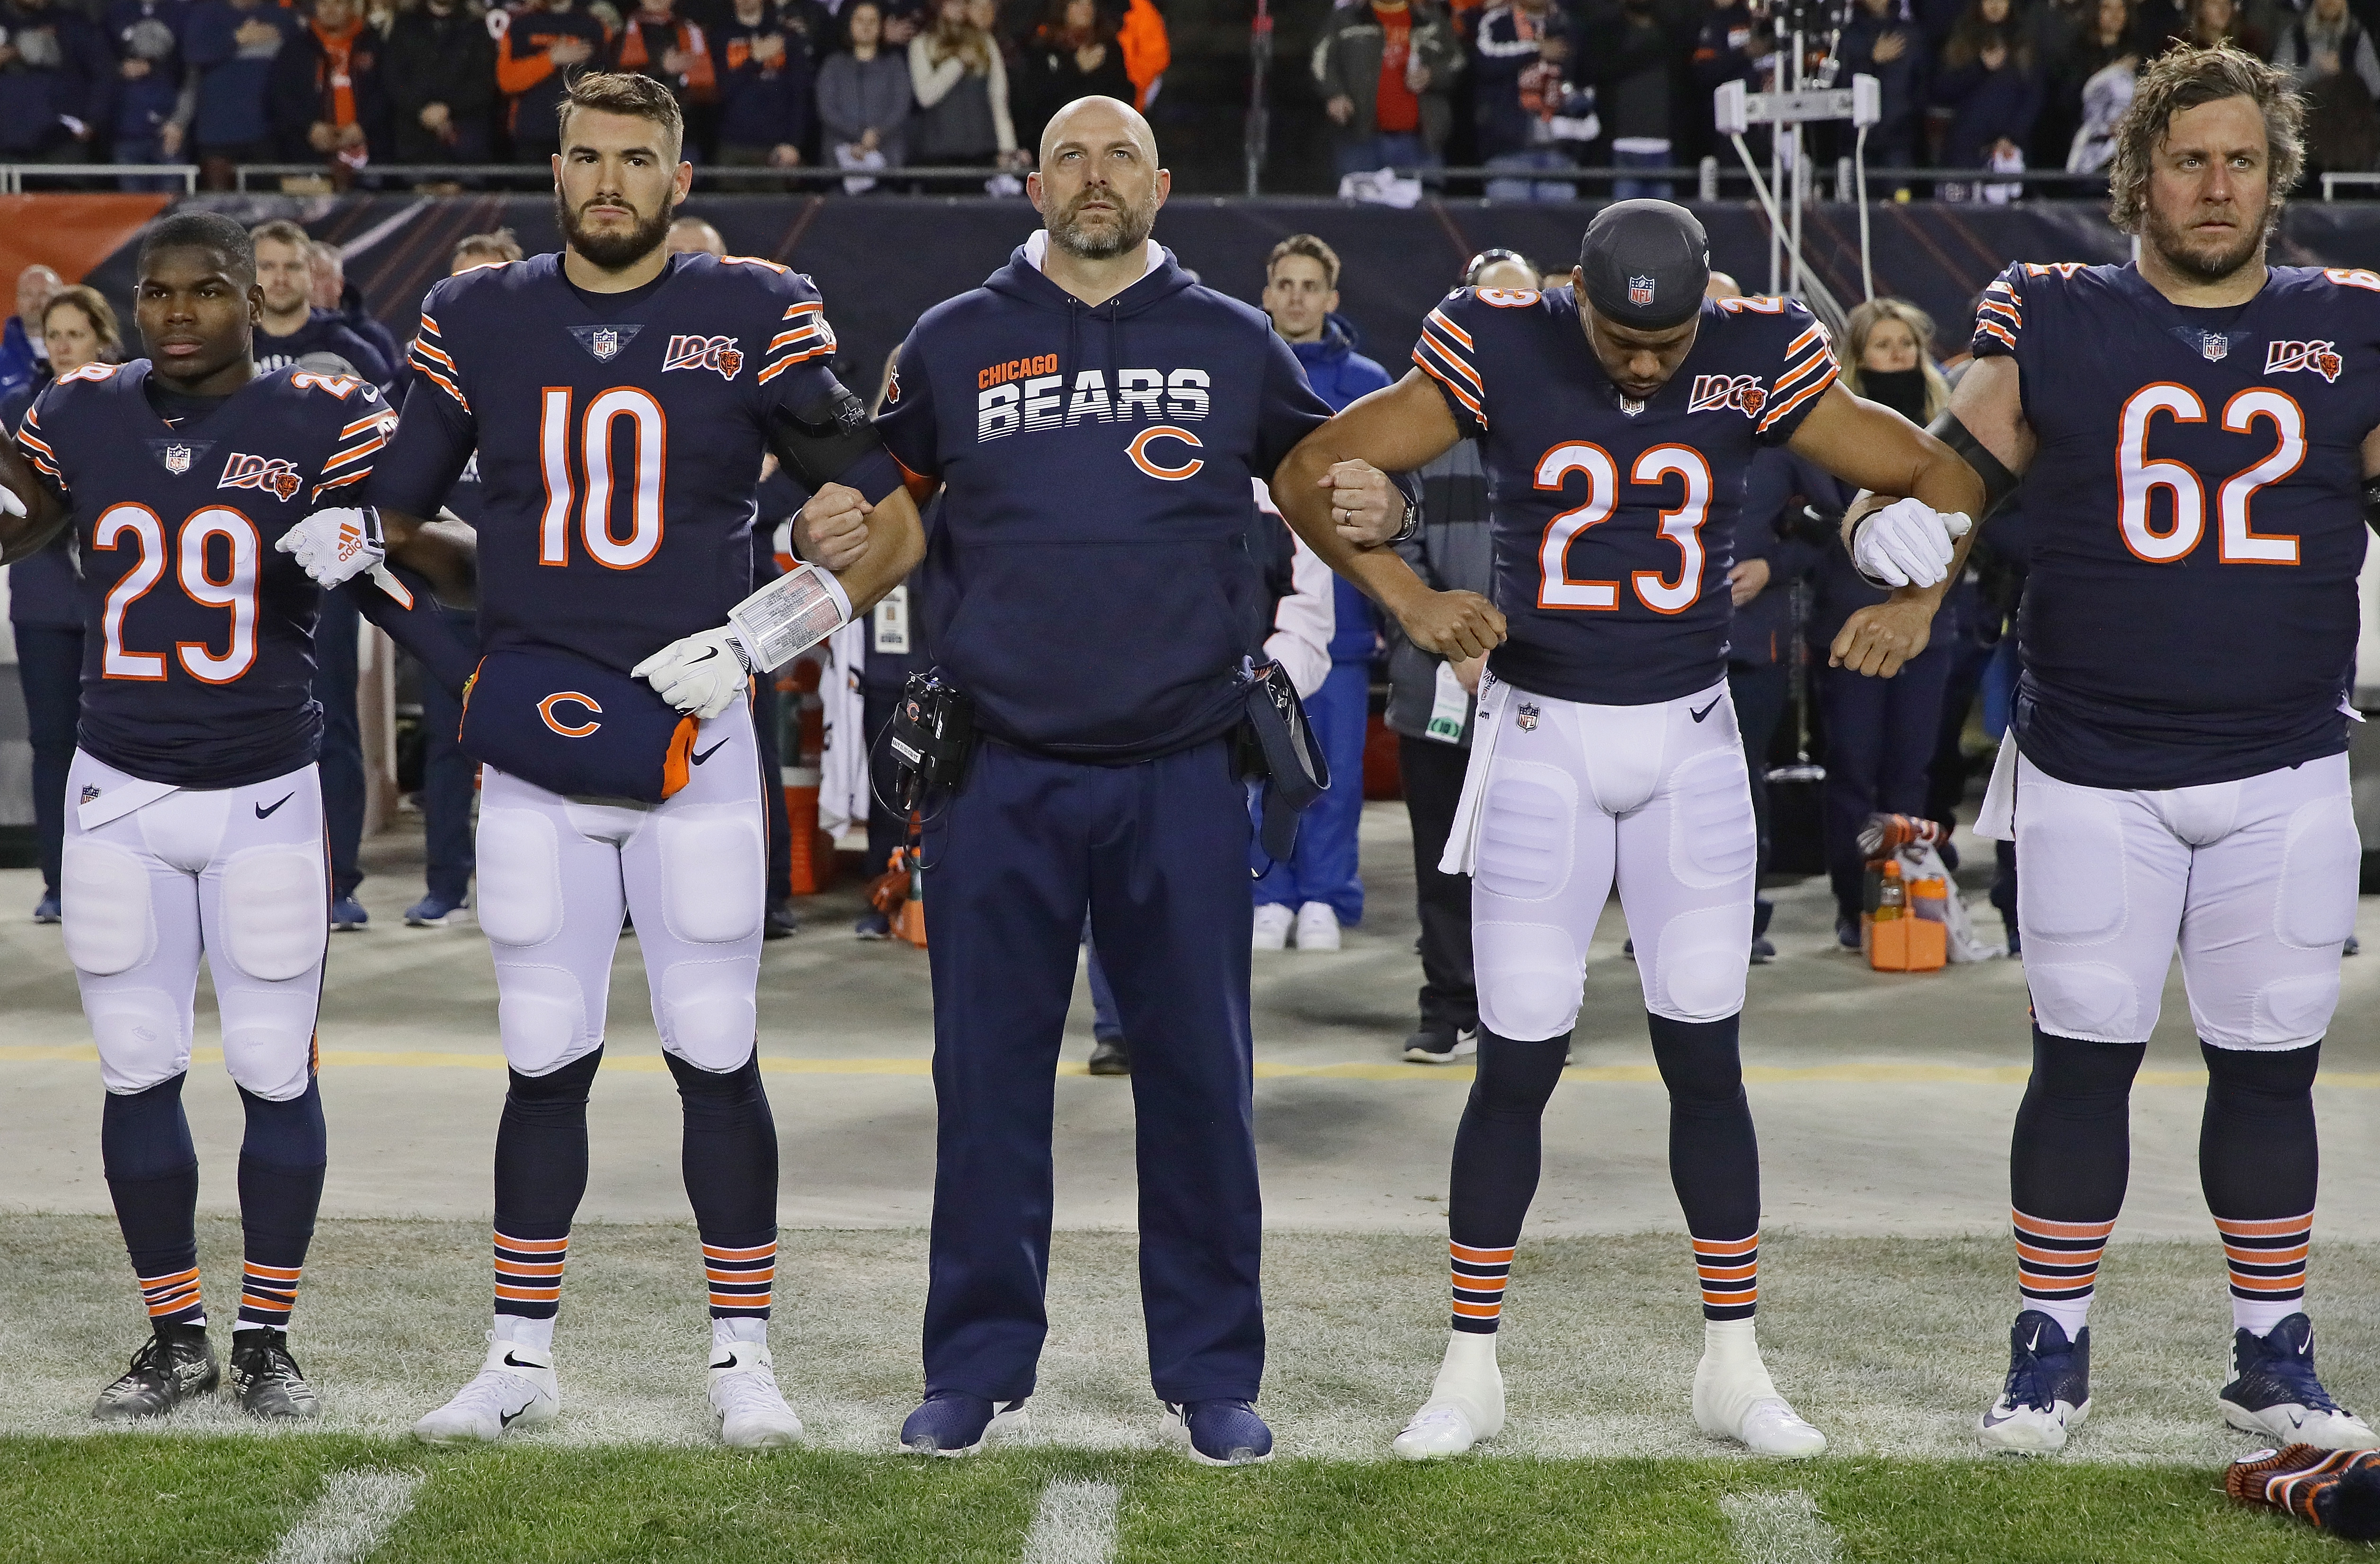 Bears coach Matt Nagy stands during the national anthem with, from left, Tarik Cohen, Mitch  Trubisky, Kyle Fuller and Ted Larsen before Sunday night's loss to the Kansas City Chiefs.